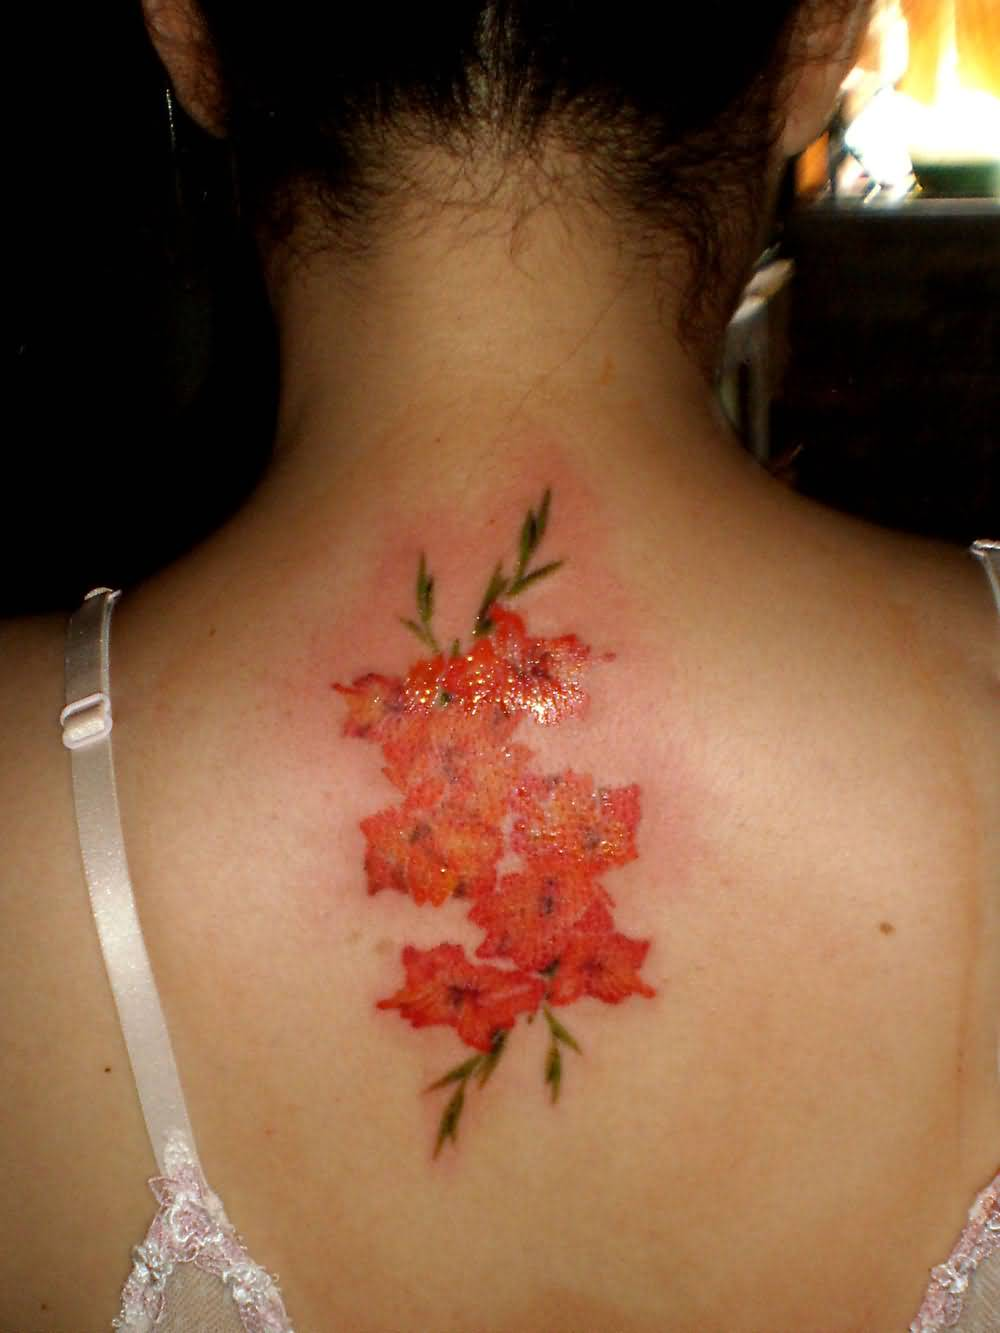 Orange Realistic Gladiolus Flower Tattoo Design Idea On Upper Back